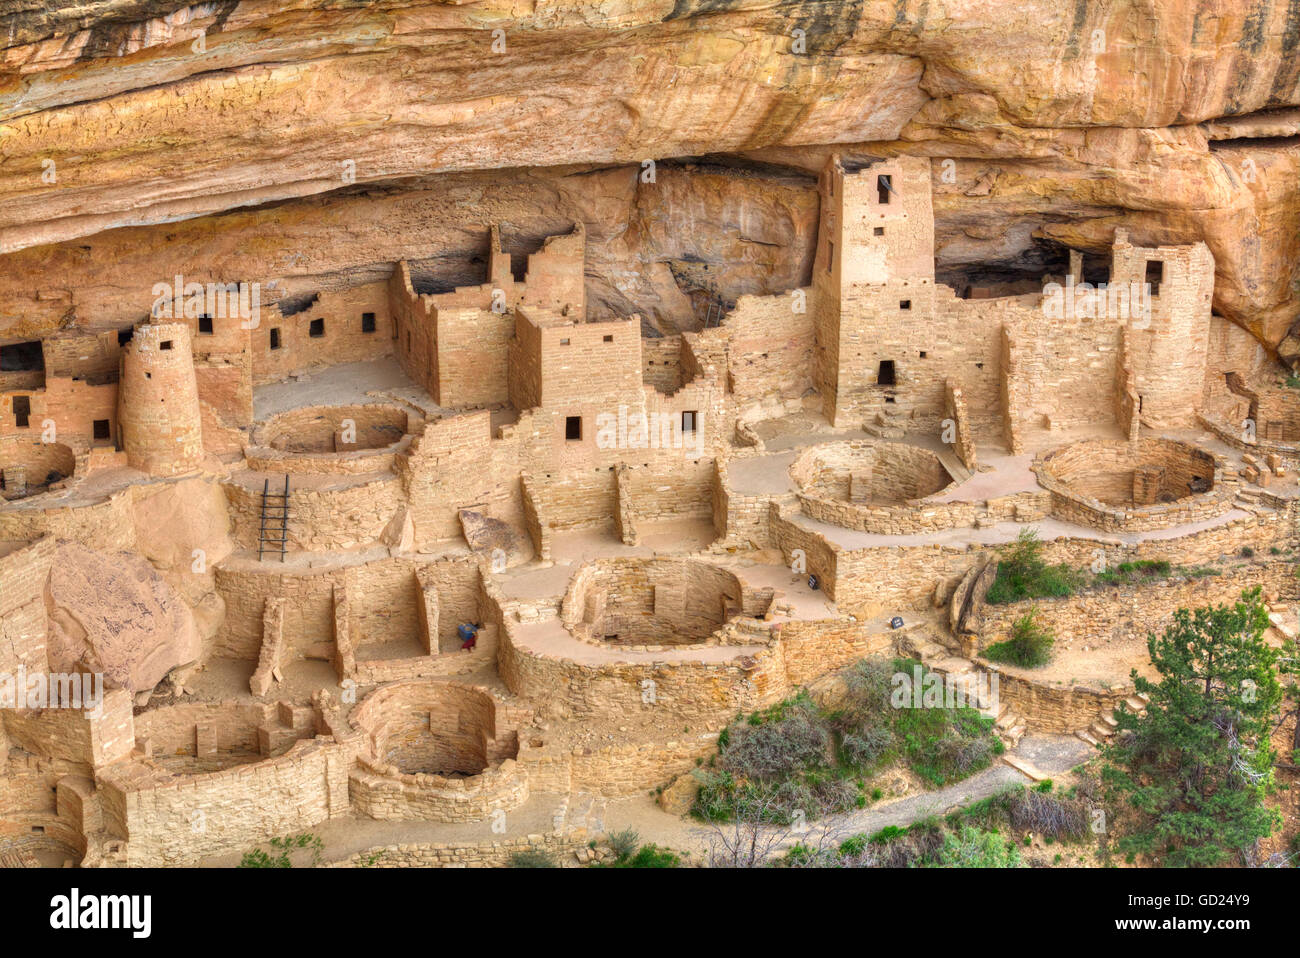 Anasazi Ruins, Cliff Palace, dating from between 600 AD and 1300 AD, Mesa Verde National Park, UNESCO, Colorado, - Stock Image